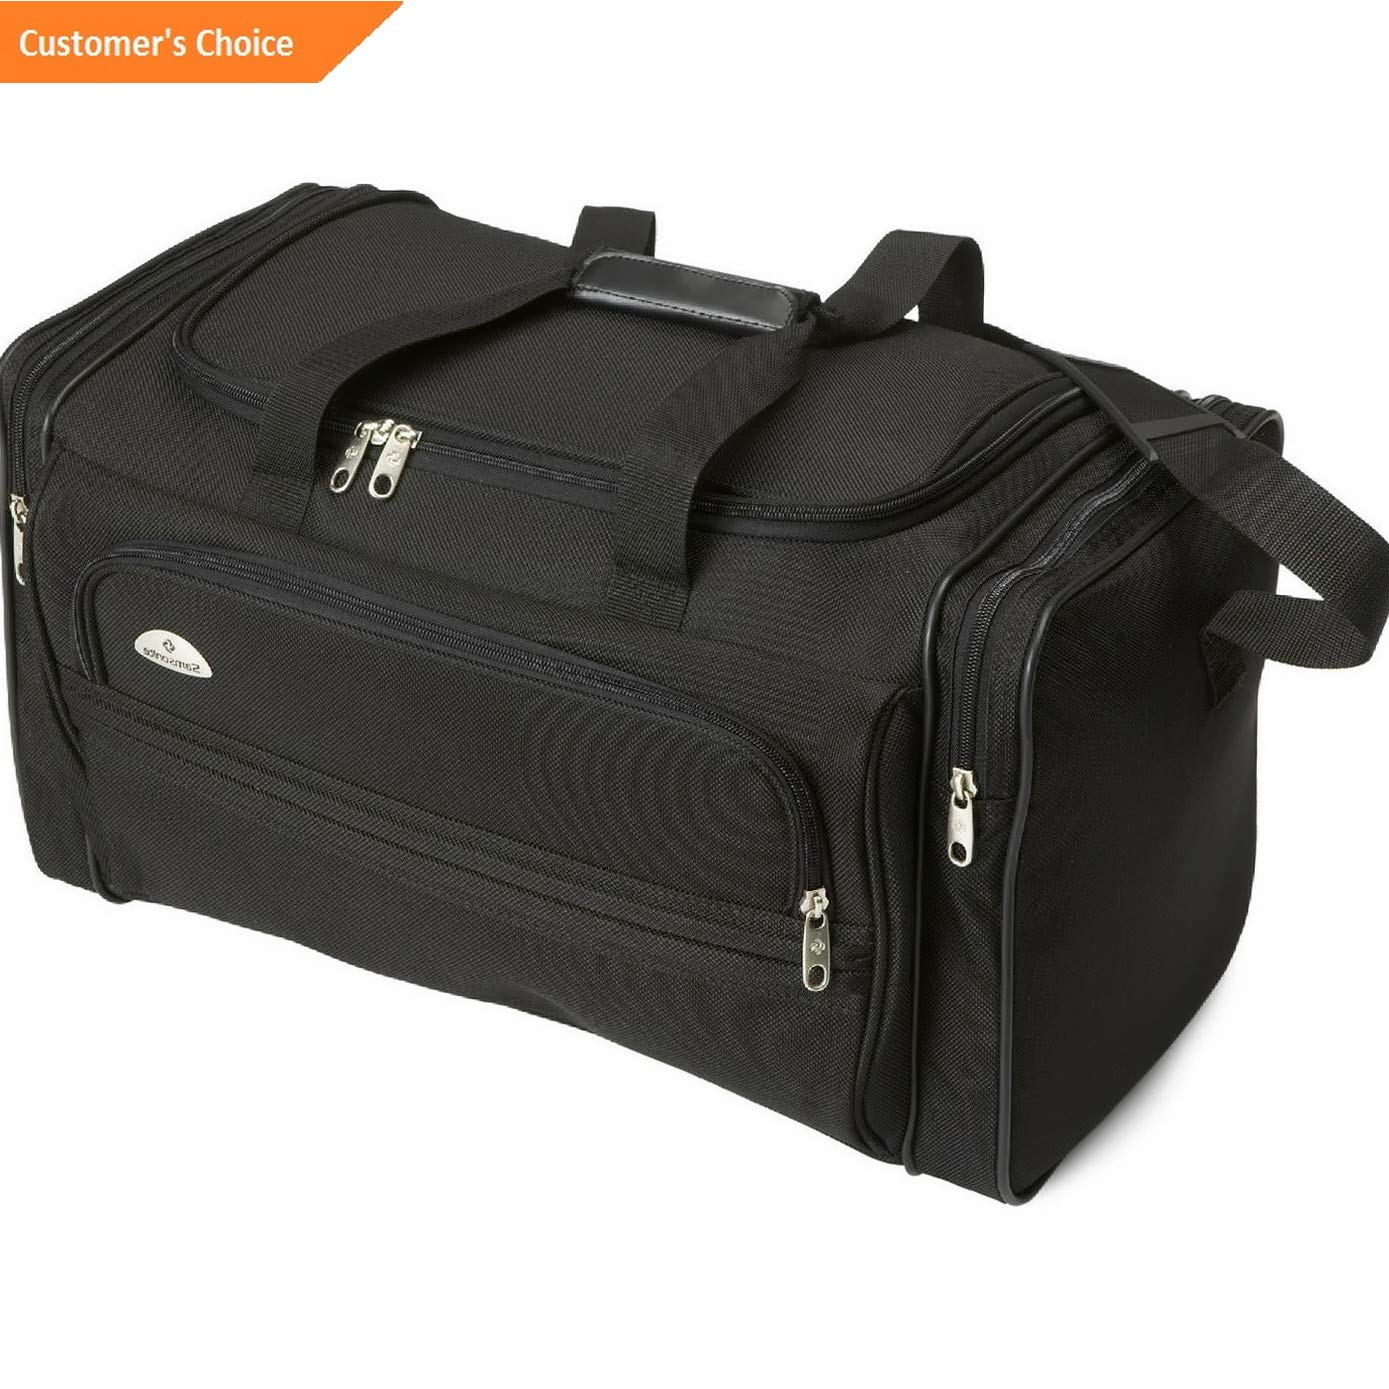 Amazon.com | Sandover Samsonite 5 Piece Nested gage Suitcase Set - 25 Inch, 20 Inch More | Model LGGG - 11833 | | Luggage Sets